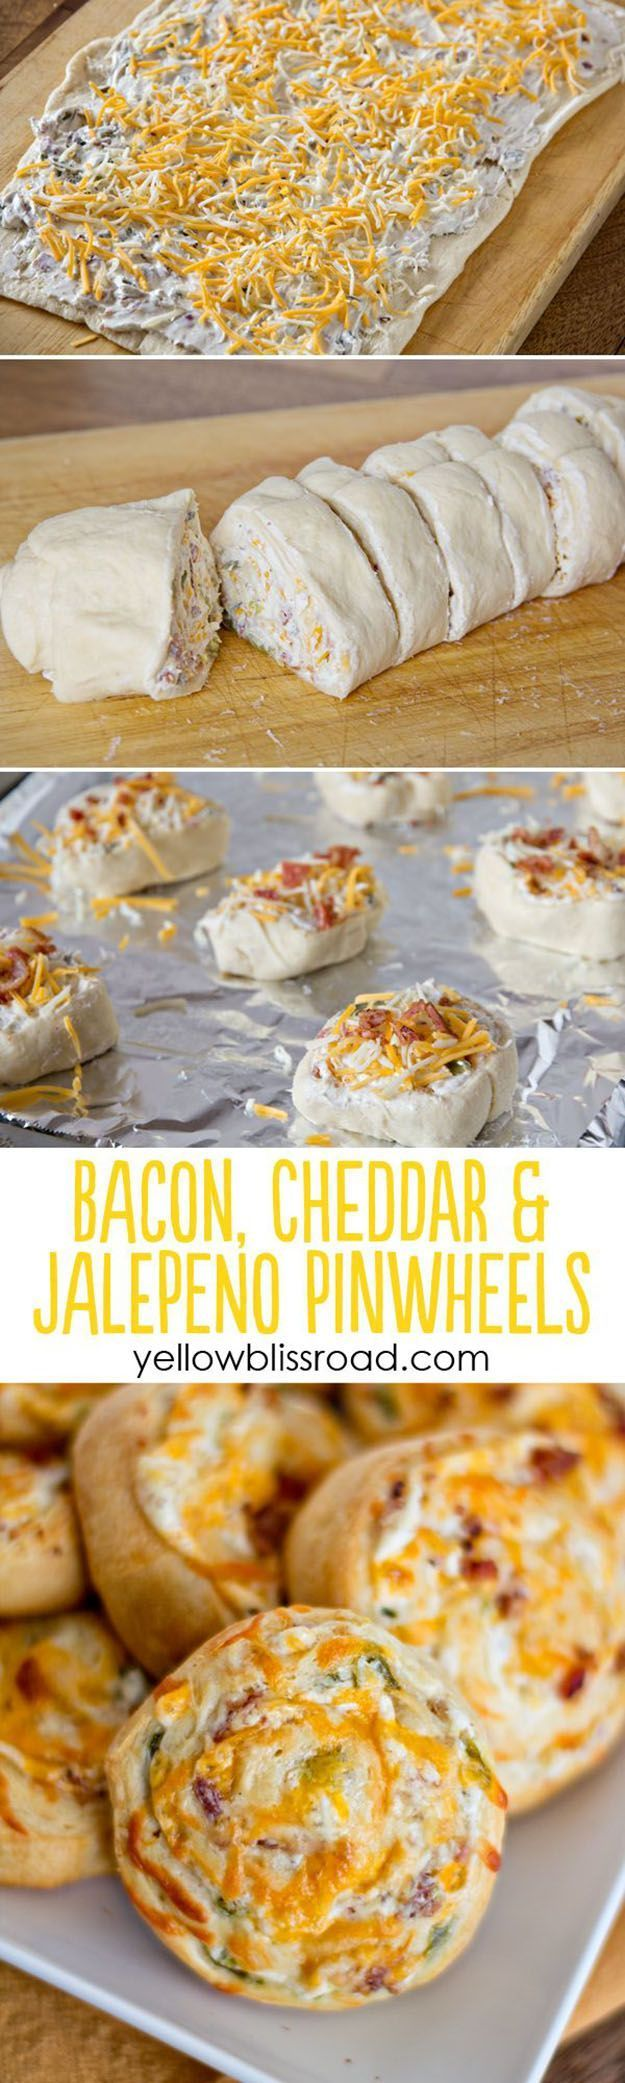 Cheap Party Food Ideas  Easy DIY Recipe for Bacon & Cheese Pinwheels   DIY Projects and Crafts by DIY JOY